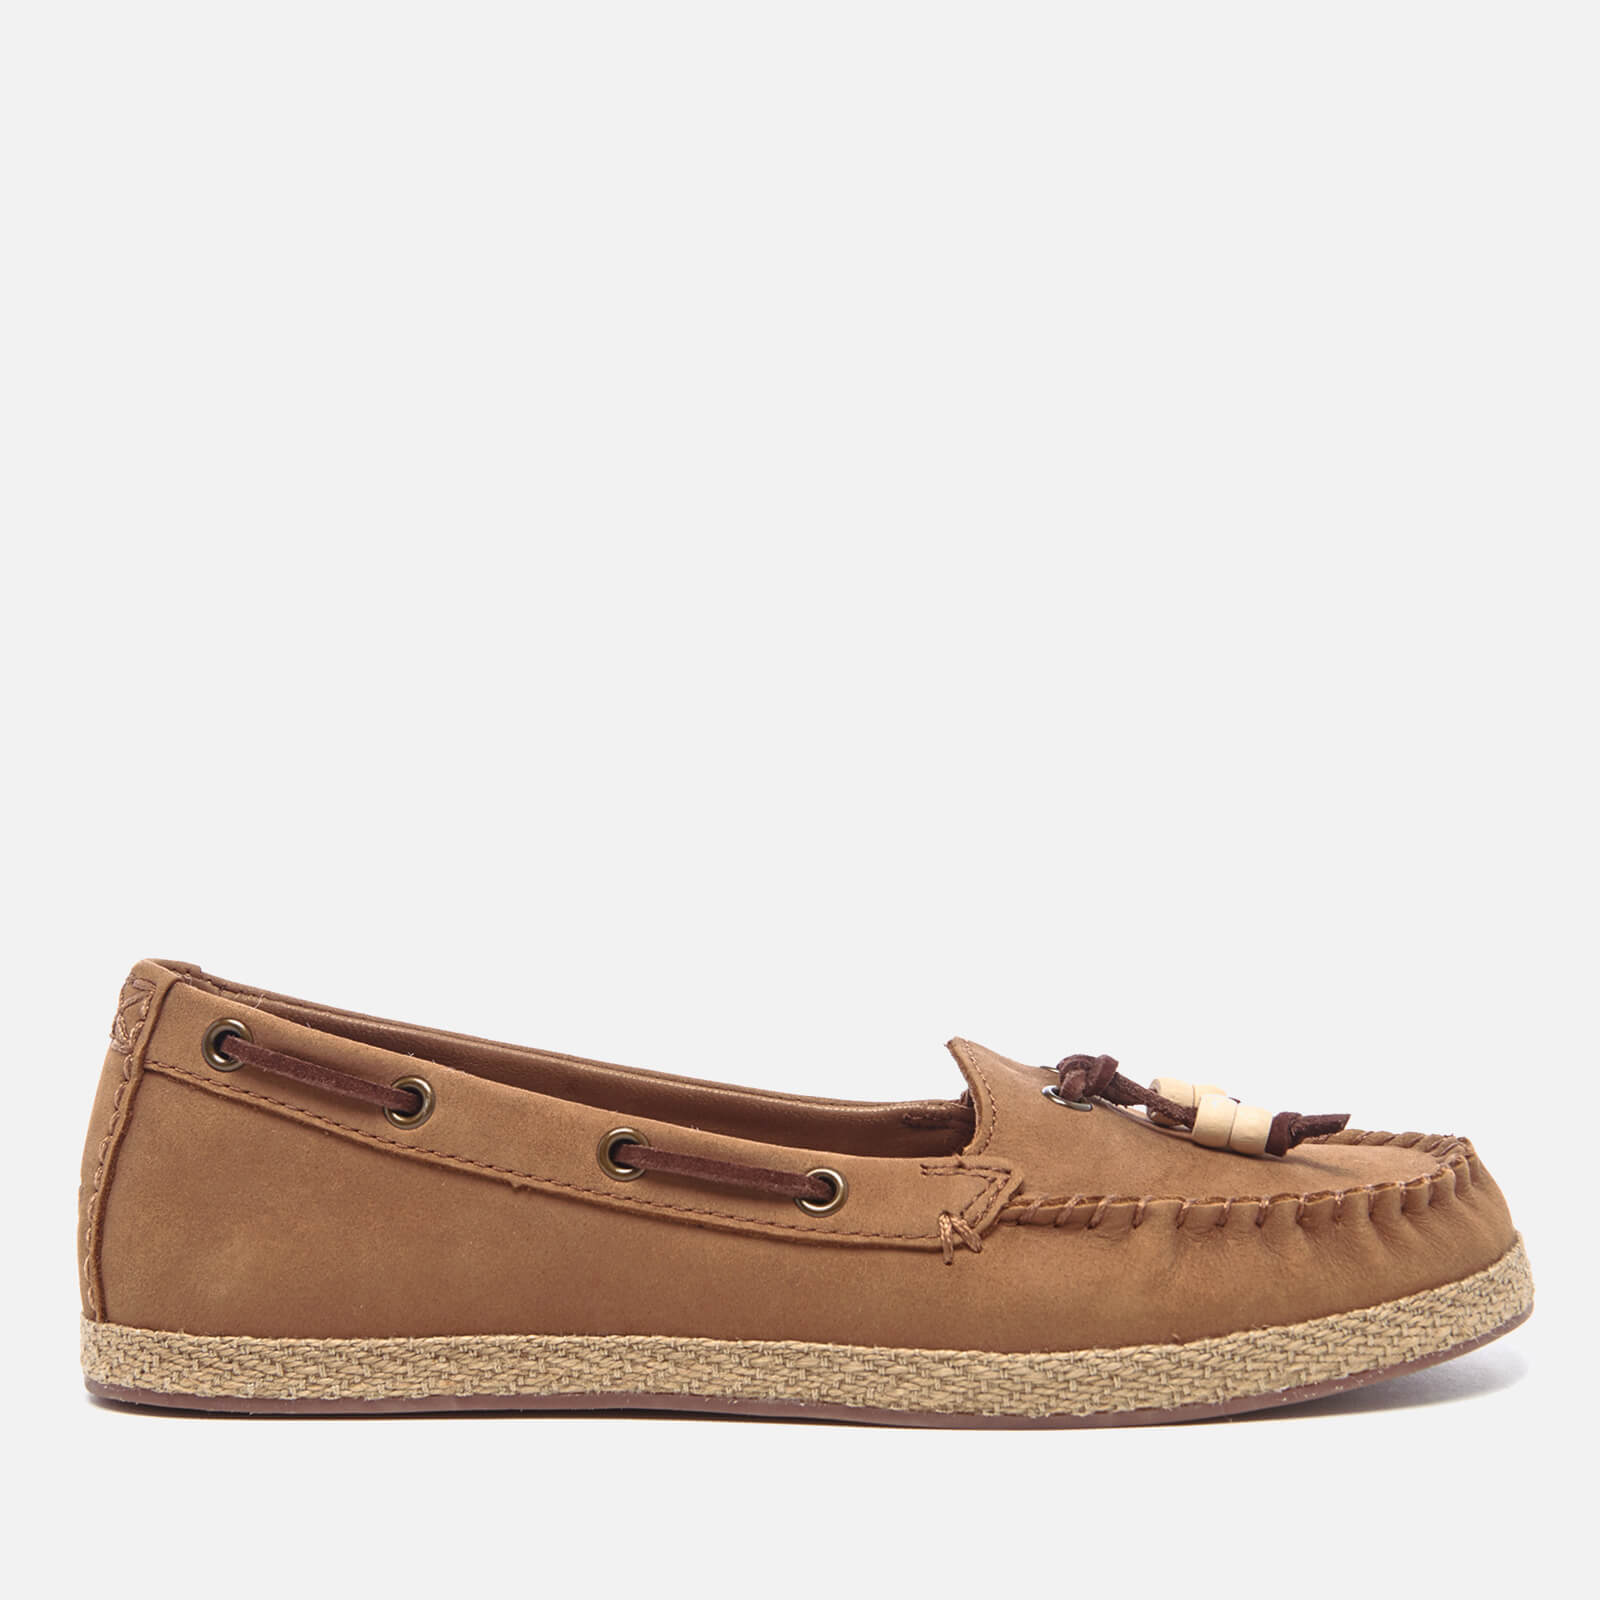 eece96f6ec9 UGG Women's Suzette Nubuck Moccasin Shoes - Chestnut | FREE UK ...